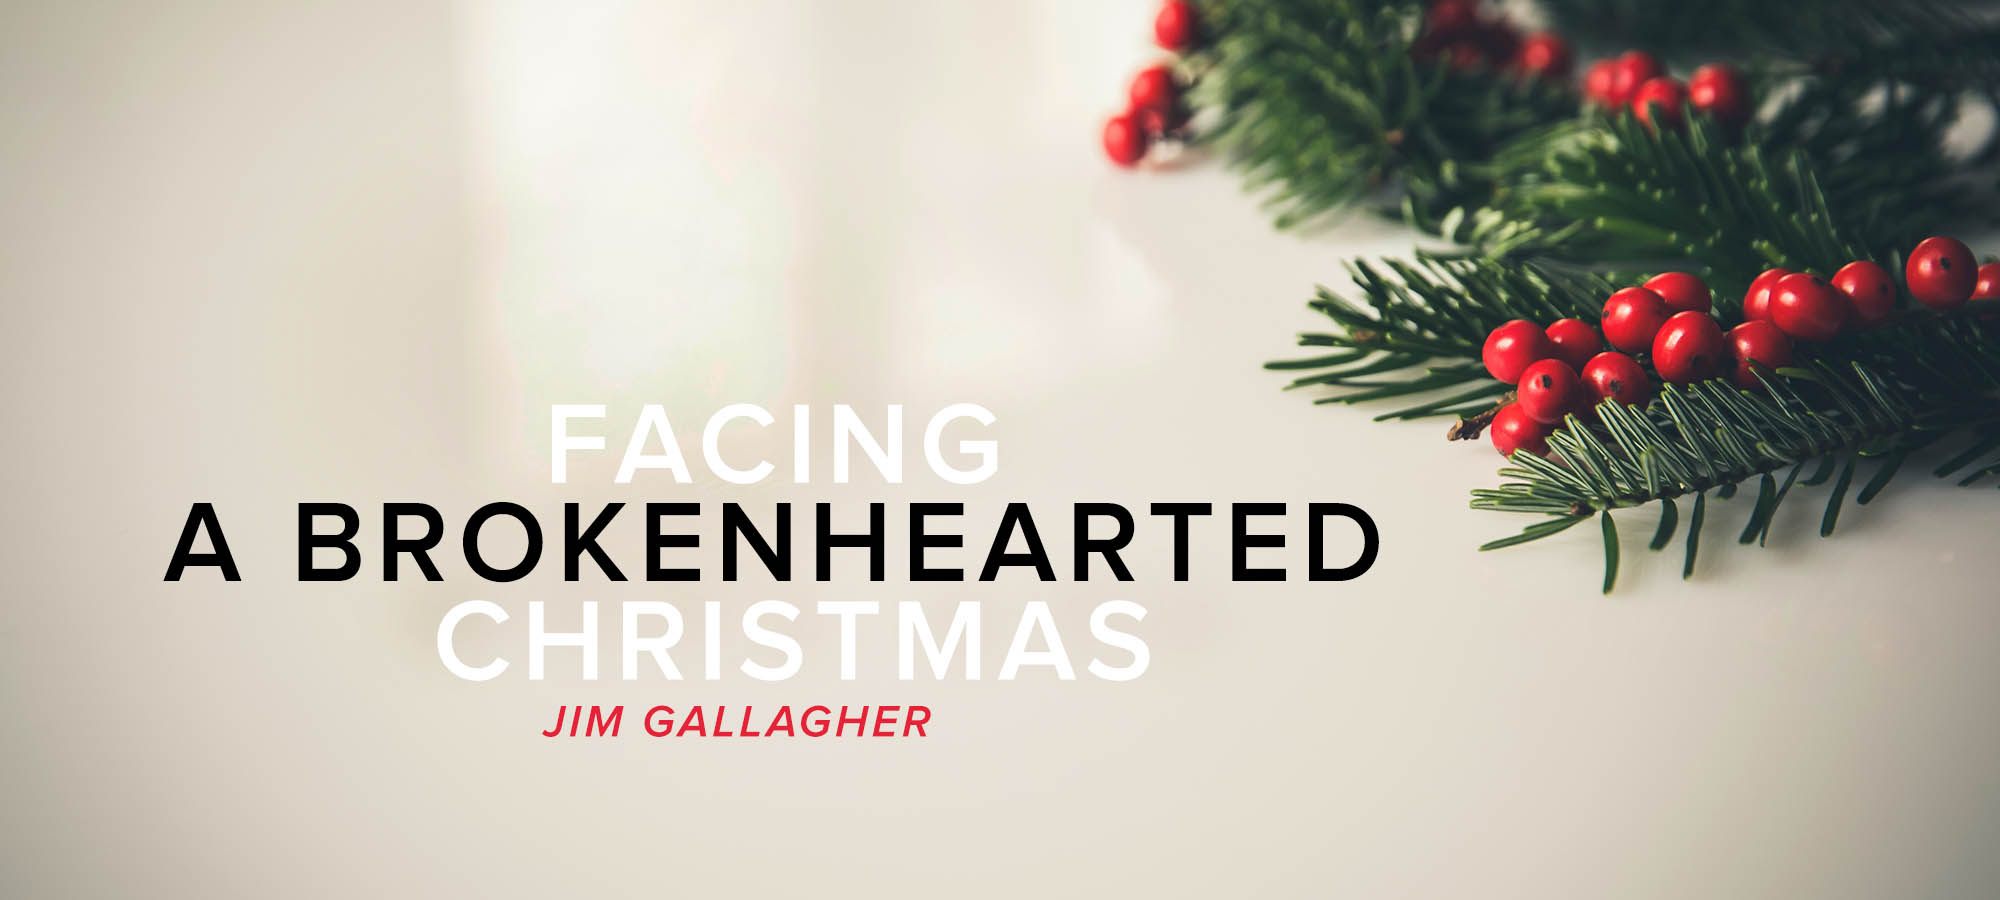 Facing a Brokenhearted Christmas